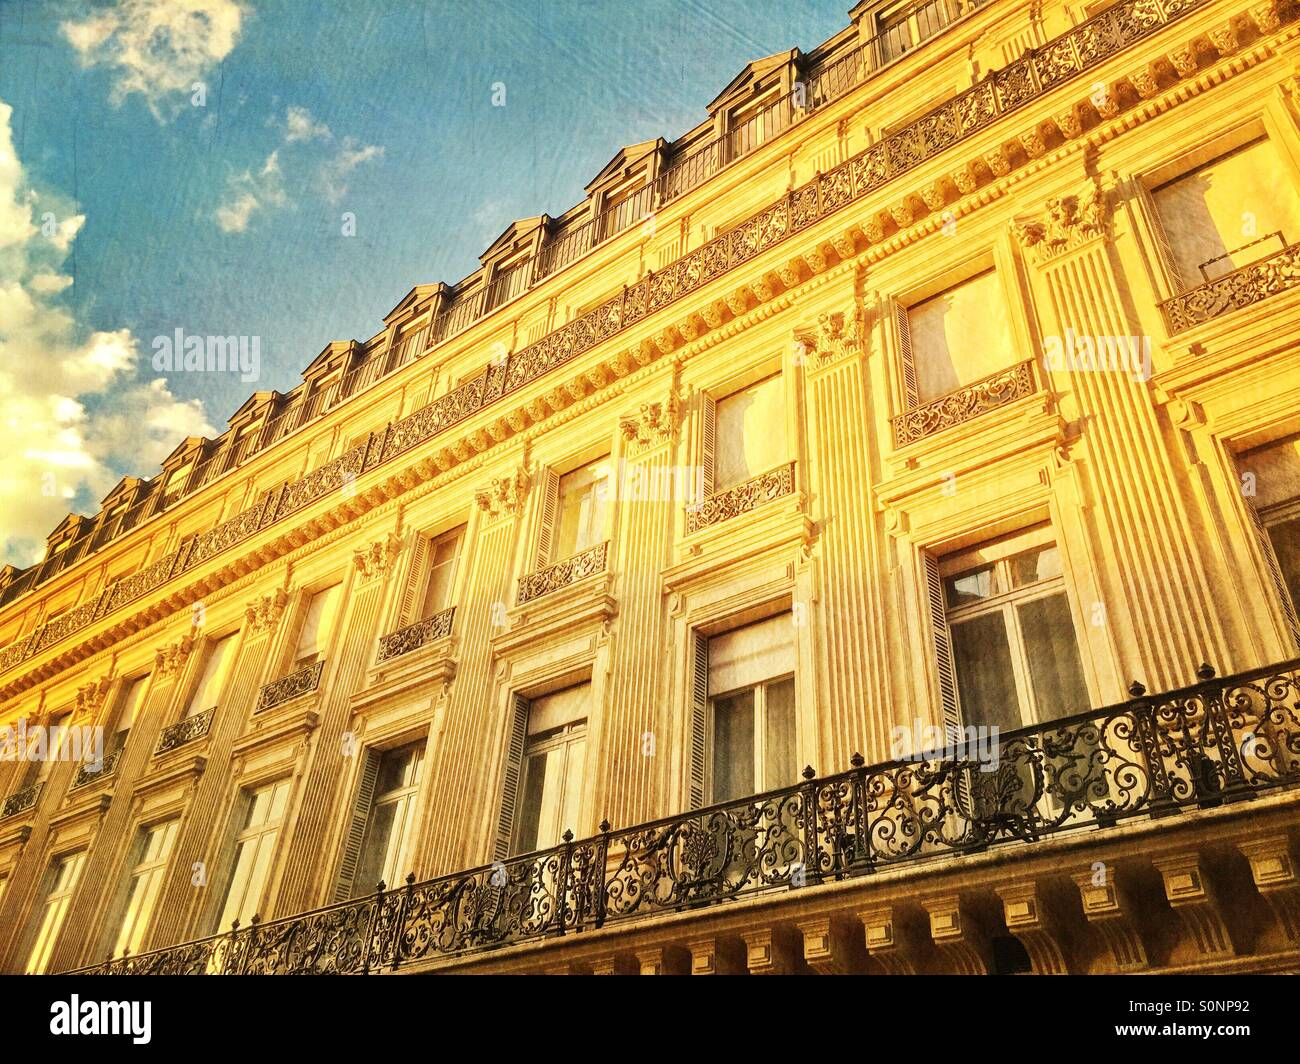 Beautiful old apartment building with classical architecture along Les Grands Boulevards in Paris, France. Vintage Stock Photo